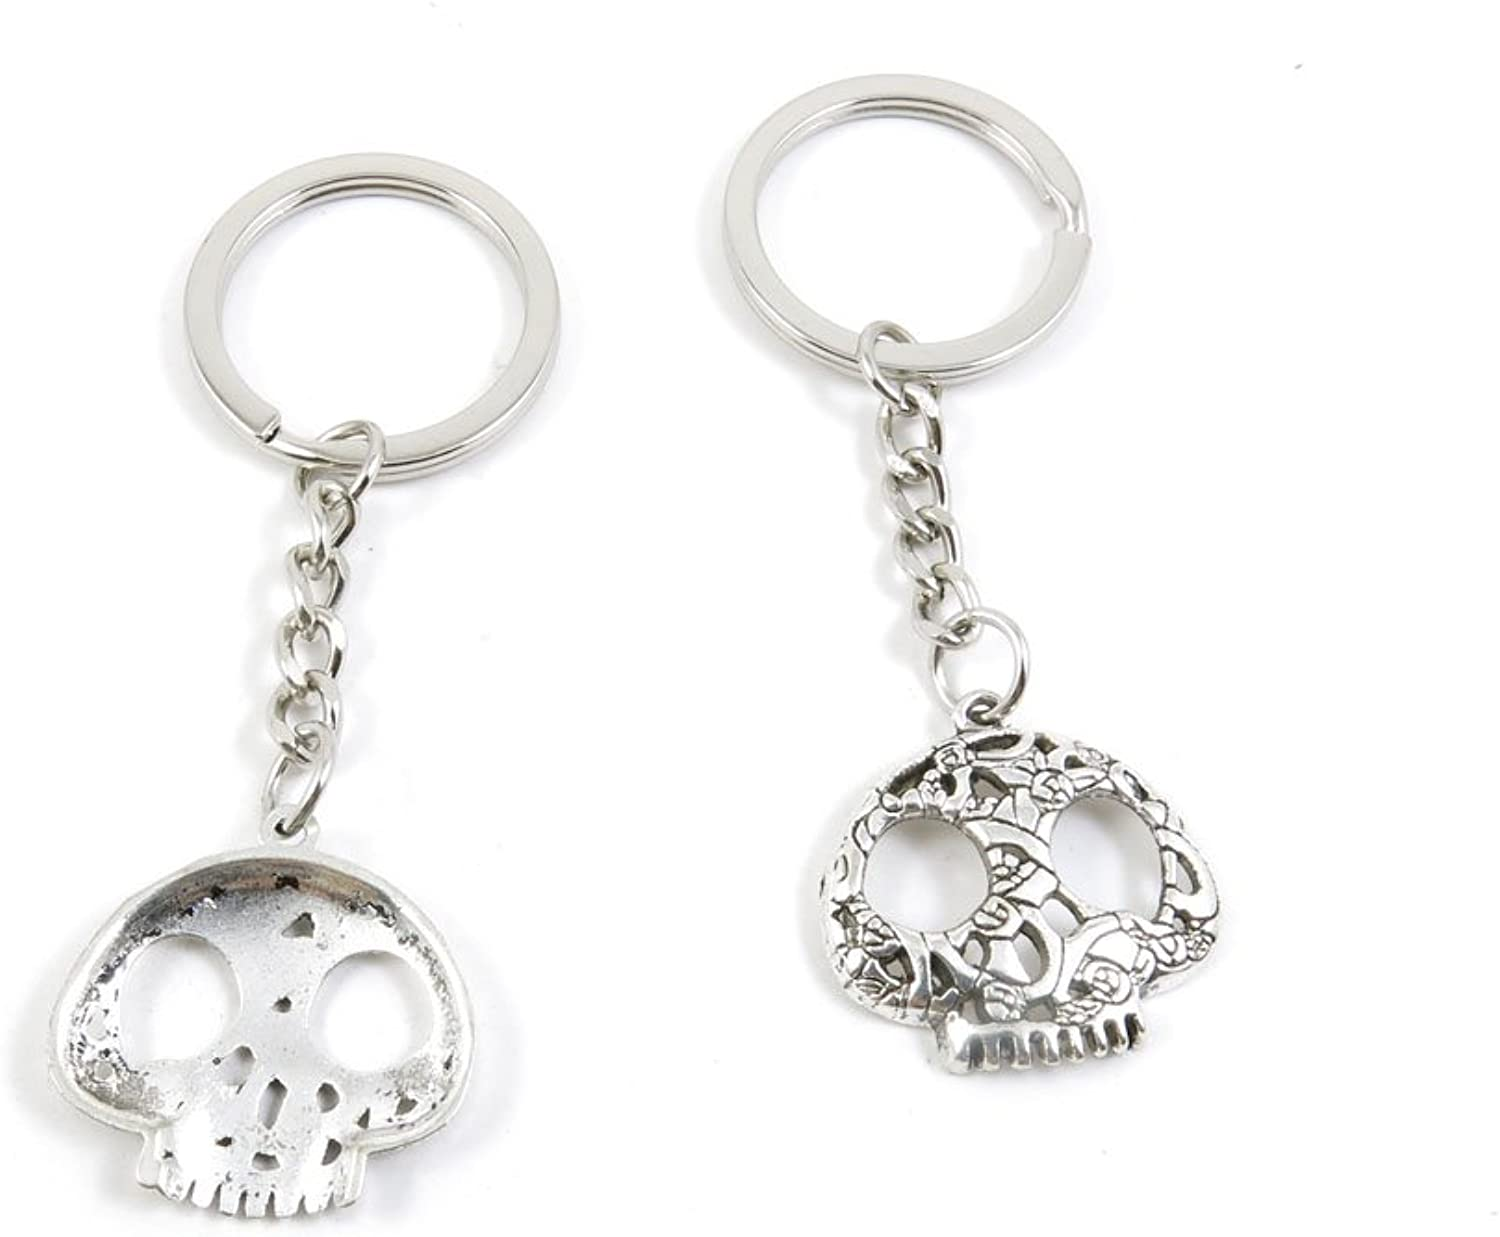 100 Pieces Keychain Keyring Door Car Key Chain Ring Tag Charms Bulk Supply Jewelry Making Clasp Findings A8BF2G Skull Head